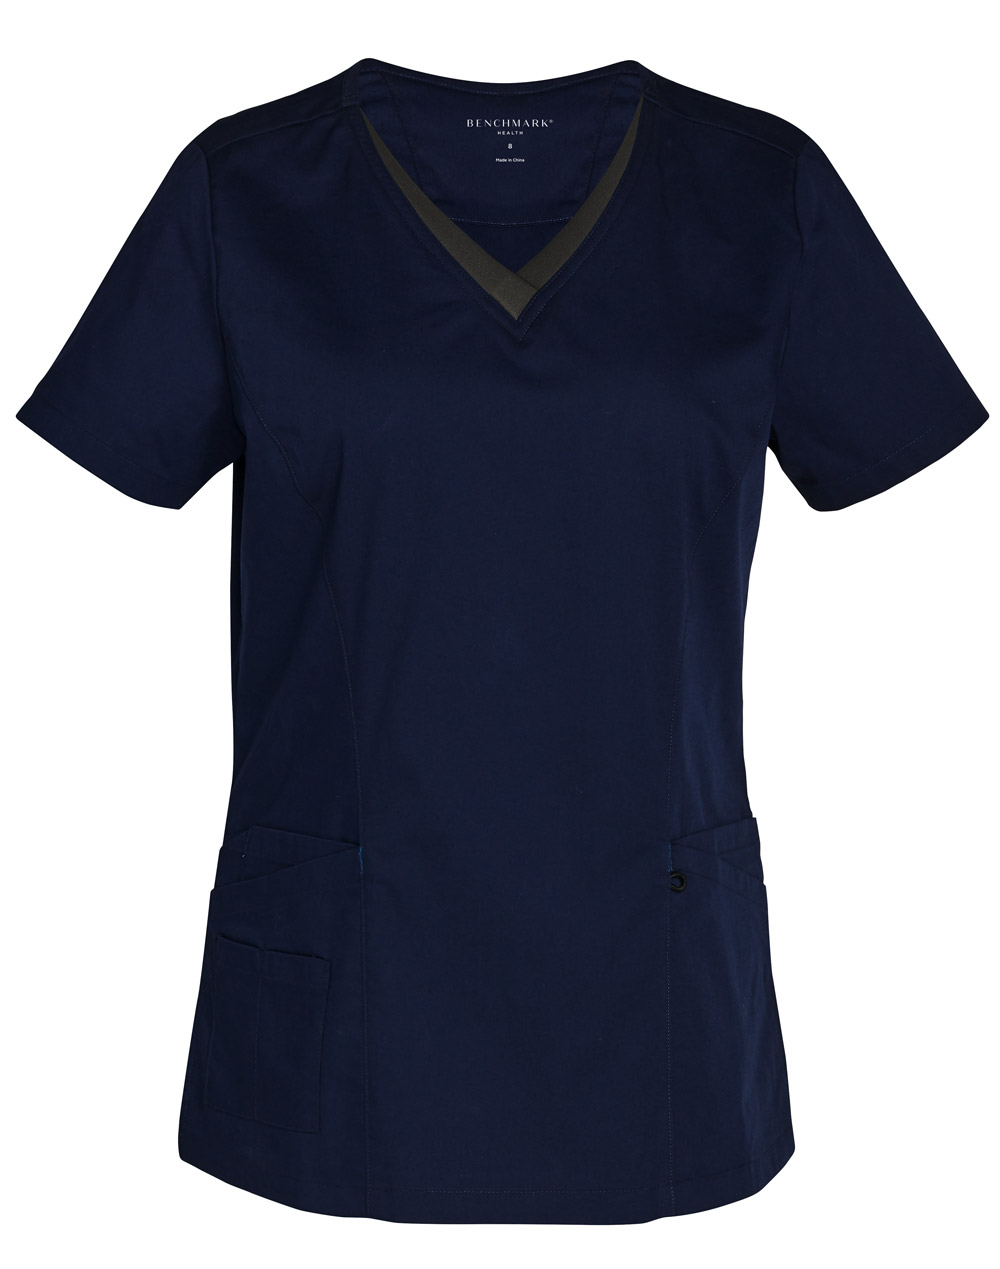 Buy Online Navy-Charcoal Ladies v-Neck Contrast Trim Scrub Top in Australia